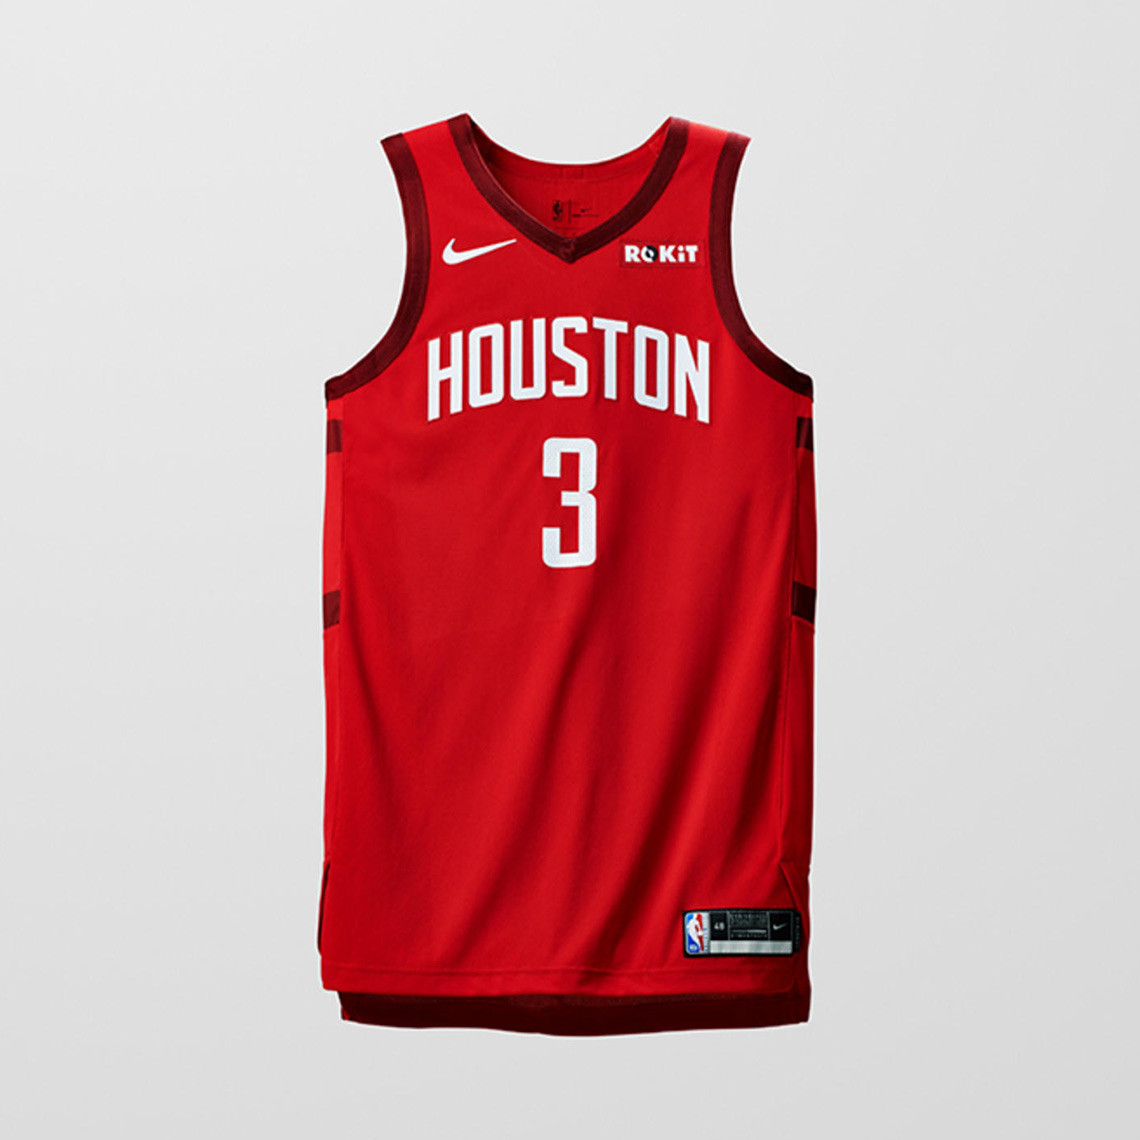 228635919abb A look at special NBA jerseys reserved for last year s playoff teams ...